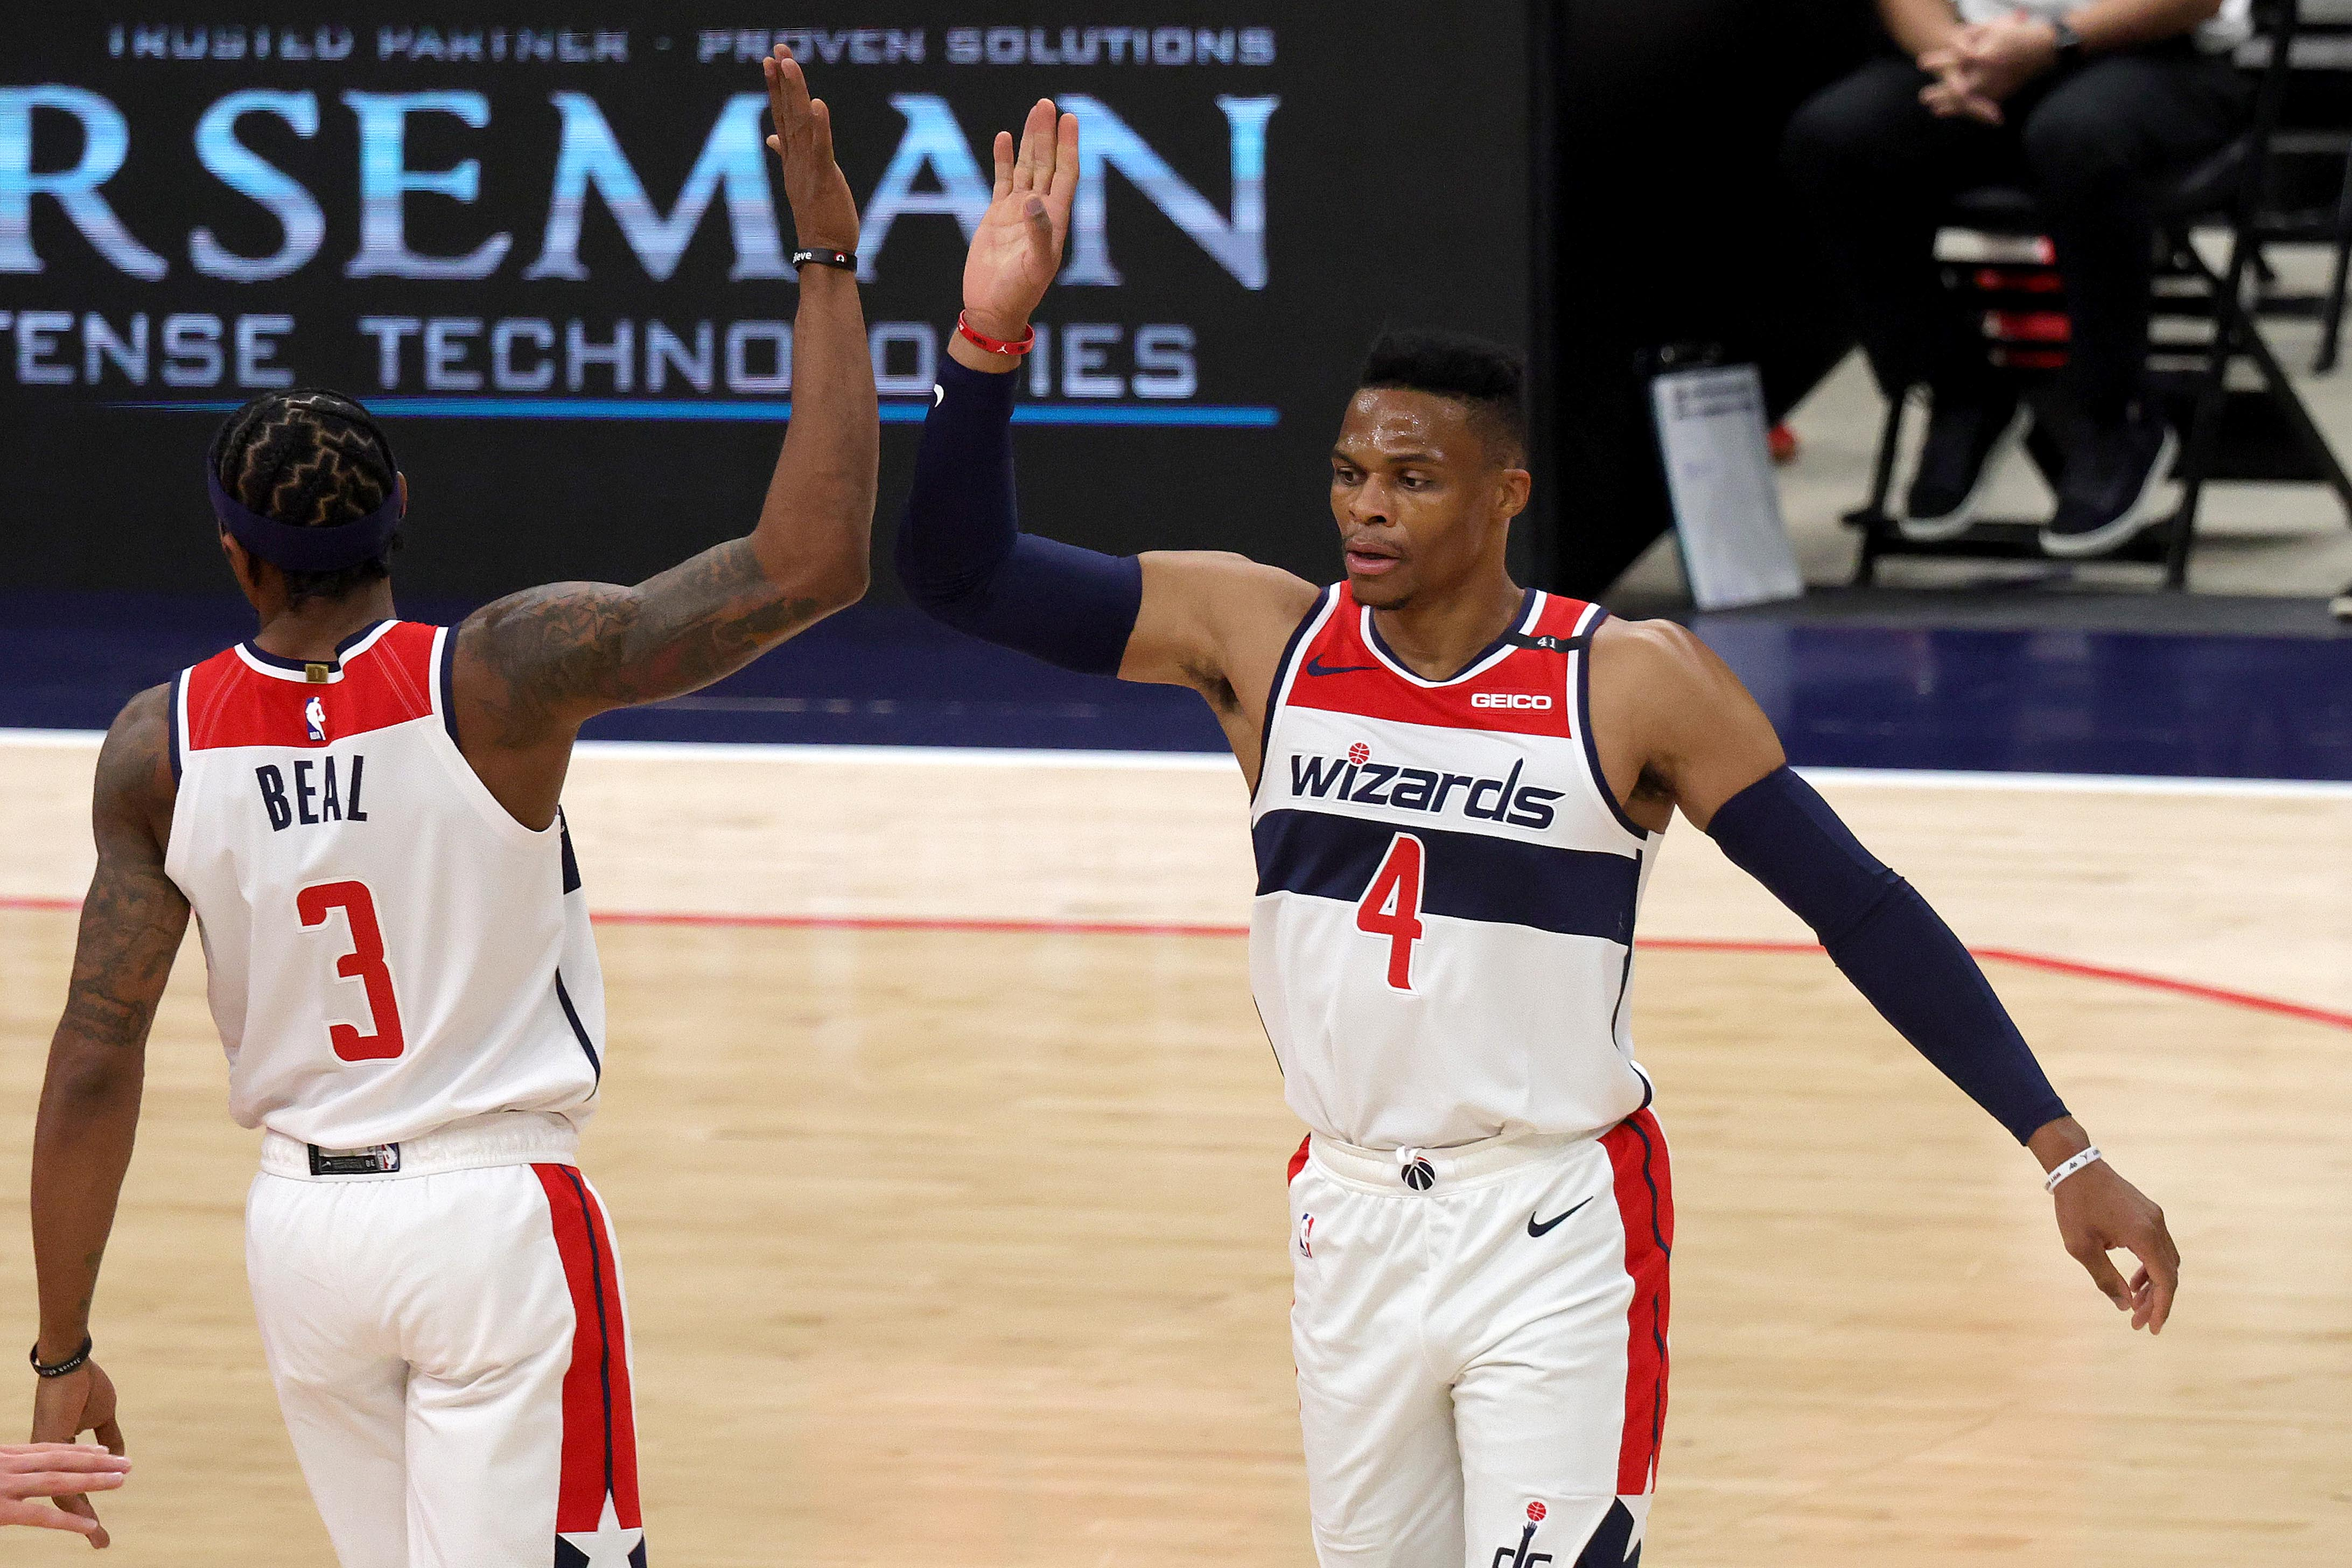 Dec 19, 2020; Washington, DC, USA; Bradley Beal #3 and Russell Westbrook #4 of the Washington Wizards celebrate after Beal scored and was fouled in the first half of a preseason game against the Detroit Pistons at Capital One Arena on December 19, 2020 in Washington, DC